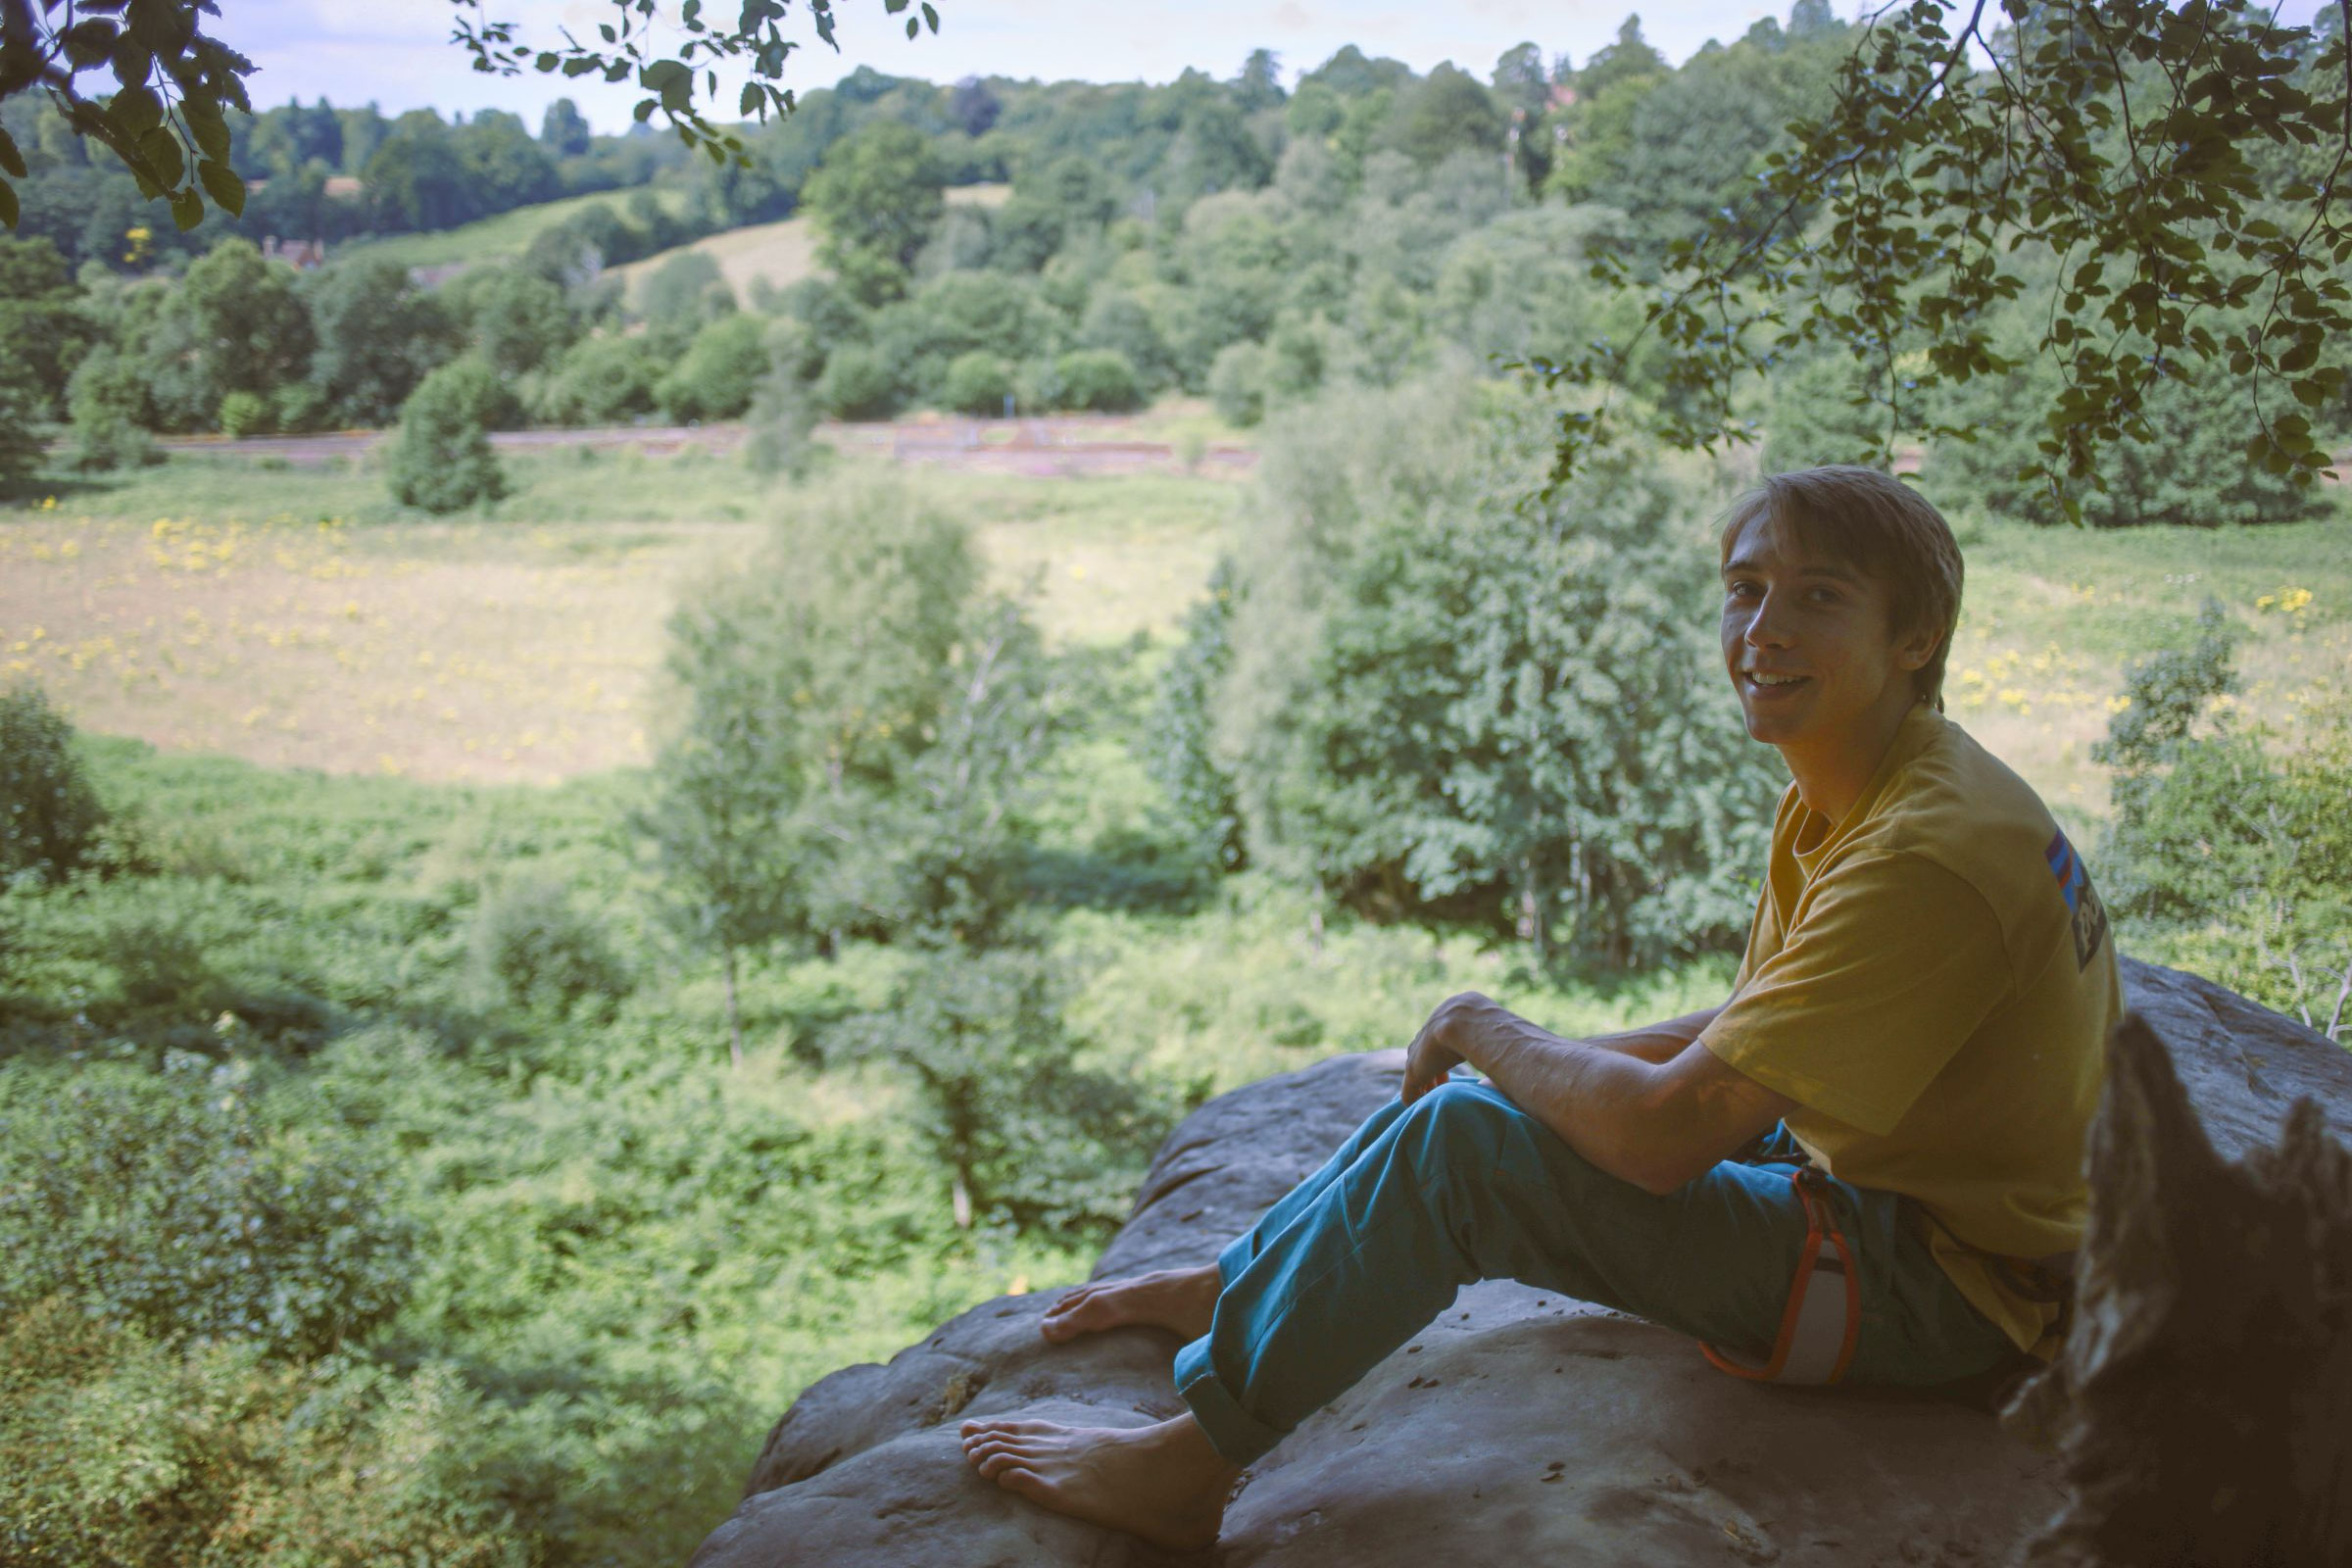 Sandstone, soloing and sore feet - An interview with Sam Taylor